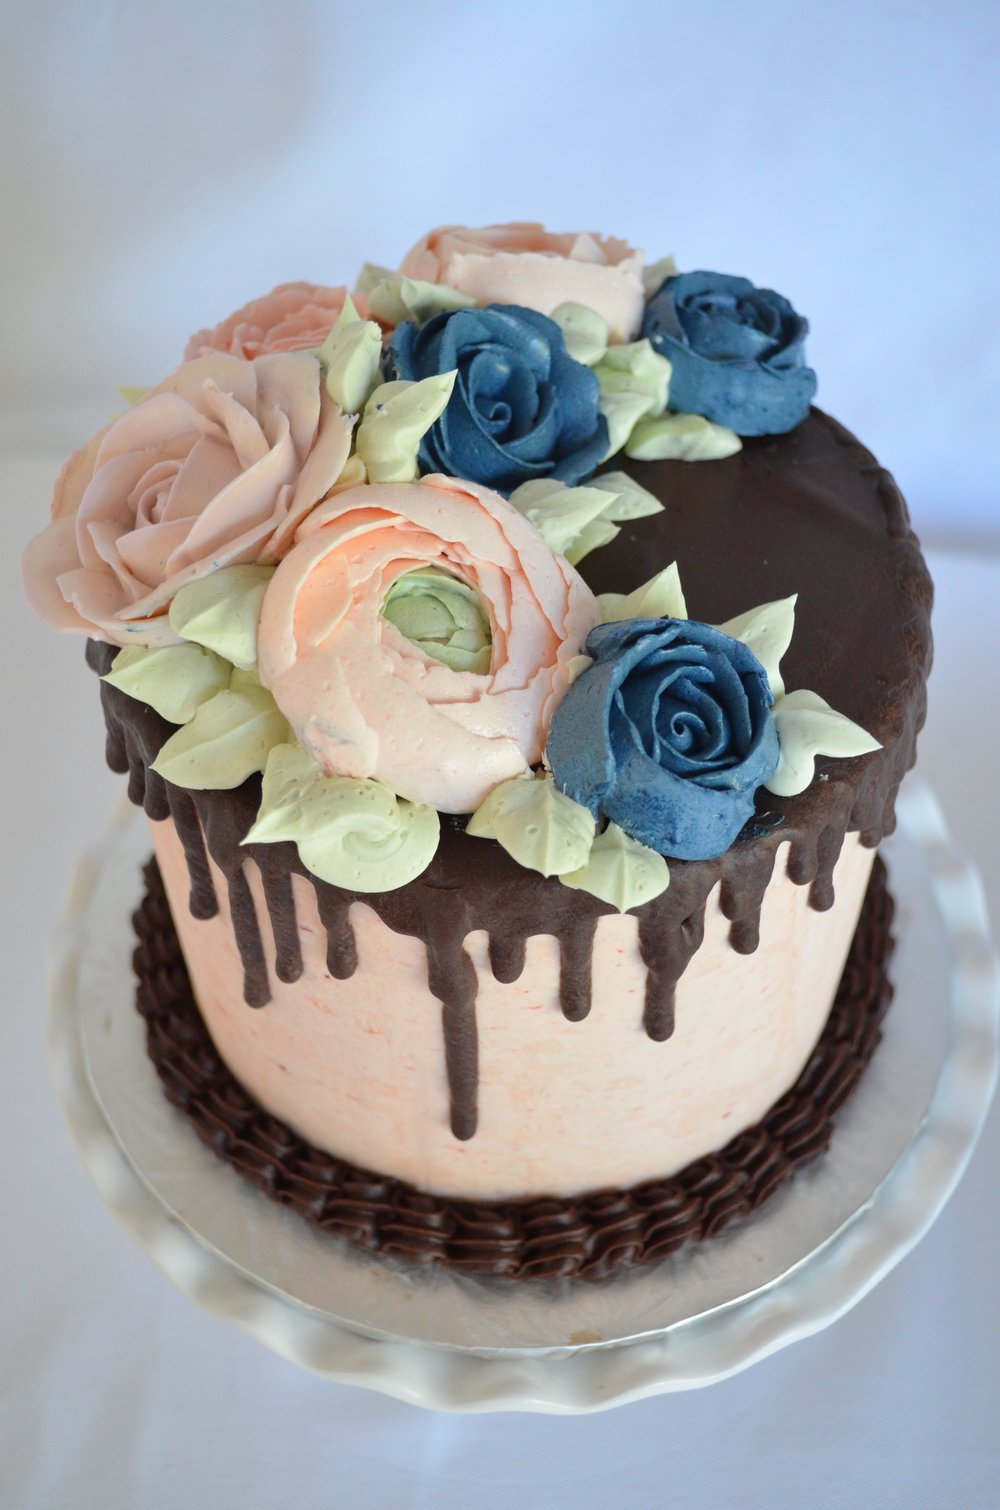 Chocolate drip with buttercream flowers